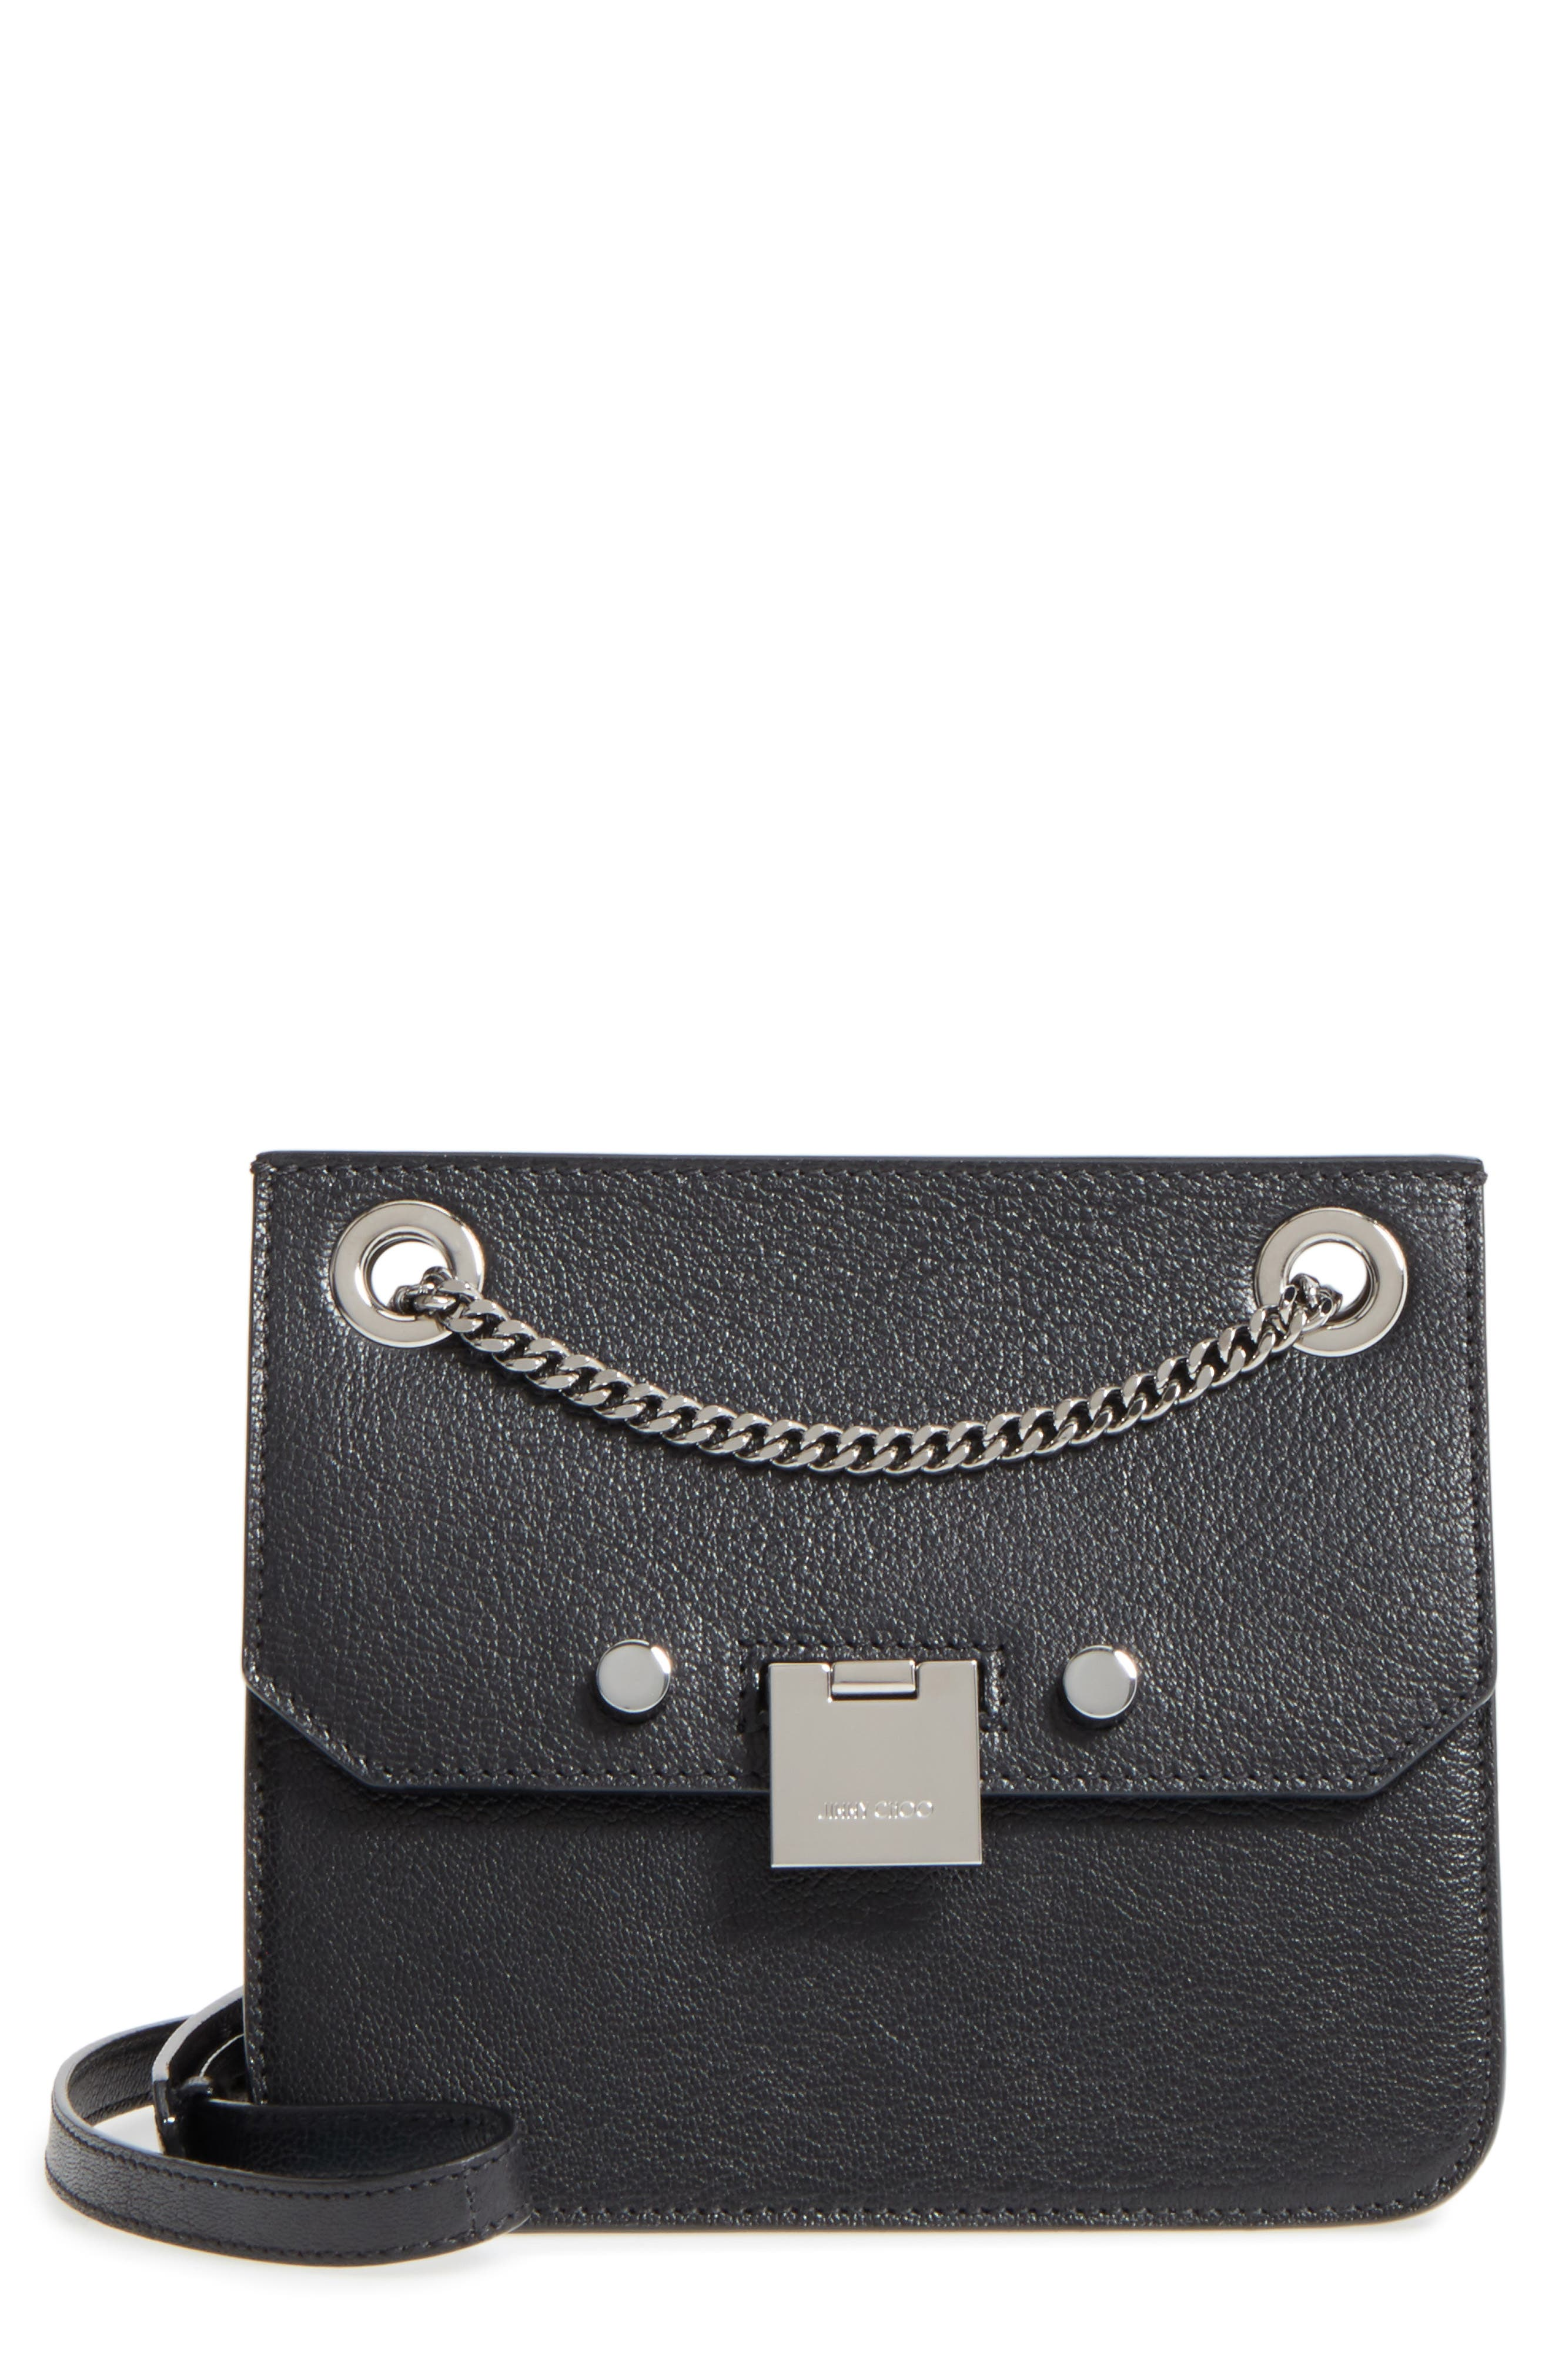 Rebel Leather Crossbody Bag,                         Main,                         color, Black/ Gunmetal